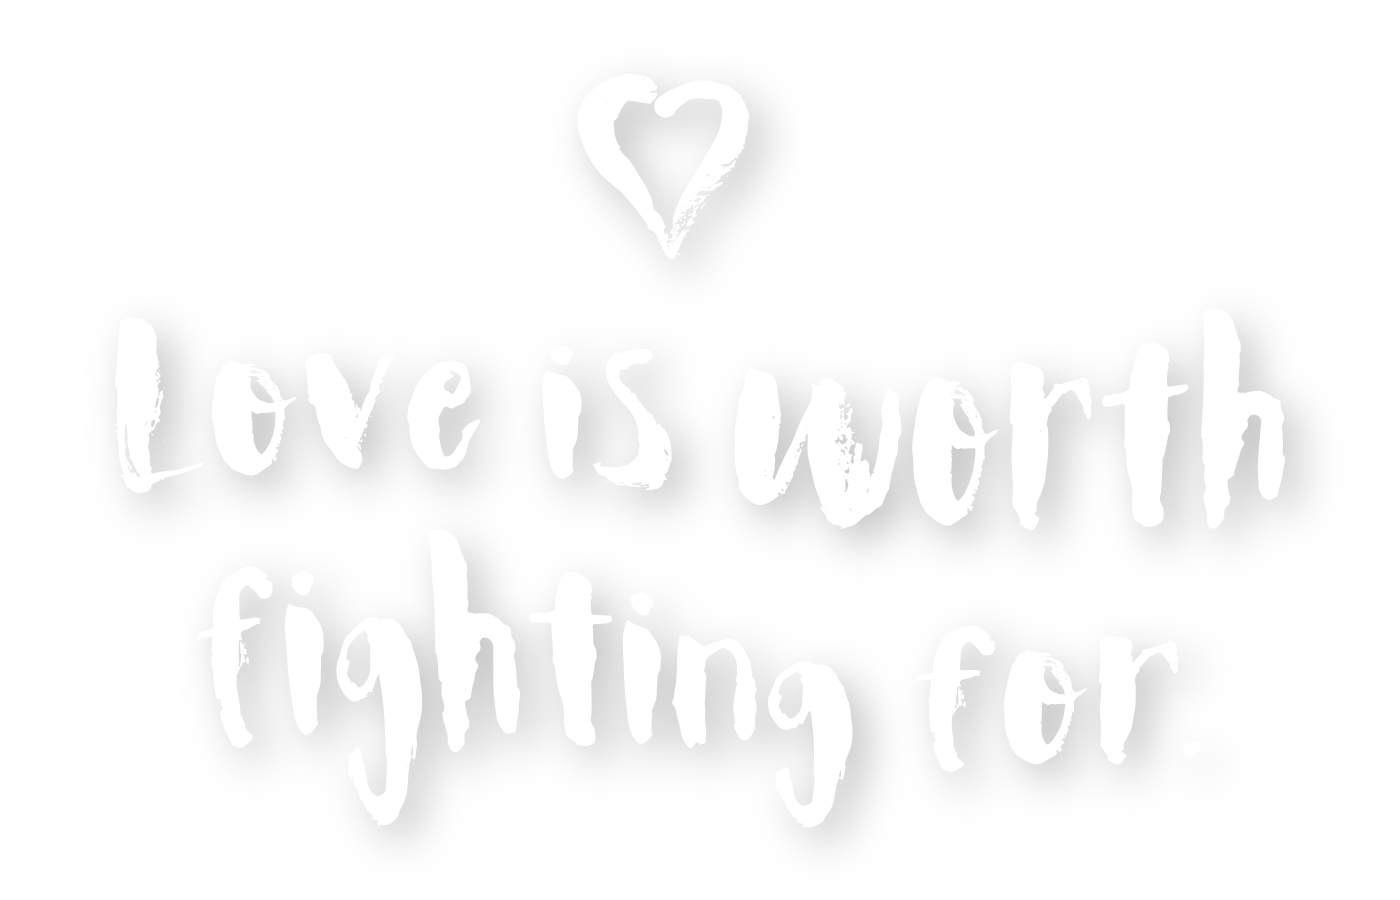 Real love Is worth fighting for.